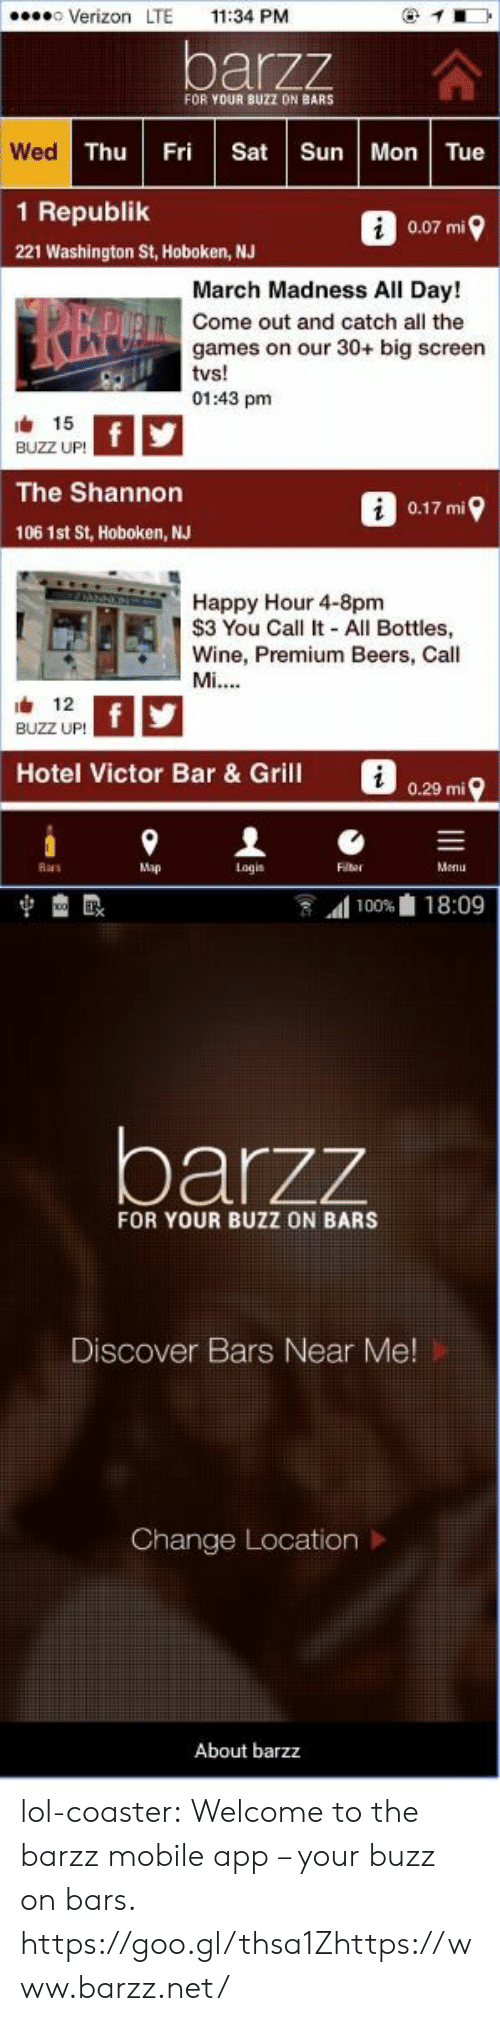 mobile app: Verizon LTE 11:34 PM  barzz  FOR YOUR BUZZ DN BARS  Wed  Thu Fri Sat Sun Mon Tue  1 Republik  0.07 mi  221 Washington St, Hoboken, NJ  March Madness All Day!  Come out and catch all the  games on our 30+ big screen  01:43 pm  由 15  BUZZ UP!  The Shannon  0.17 mi  106 1st St, Hoboken, NJ  2 Happy Hour 4-8pm  S3 You Call It - All Bottles,  Wine, Premium Beers, Call  12  BUZZ UP!  Hotel Victor Bar & Grill  i  0.29 mi  Ras  Map  Logis  Flter  Menu   1100%血18:09  barzz  FOR YOUR BUZZ ON BARS  Discover Bars Near Me  Change Location >  About barzz lol-coaster:    Welcome to the barzz mobile app – your buzz on bars.    https://goo.gl/thsa1Zhttps://www.barzz.net/